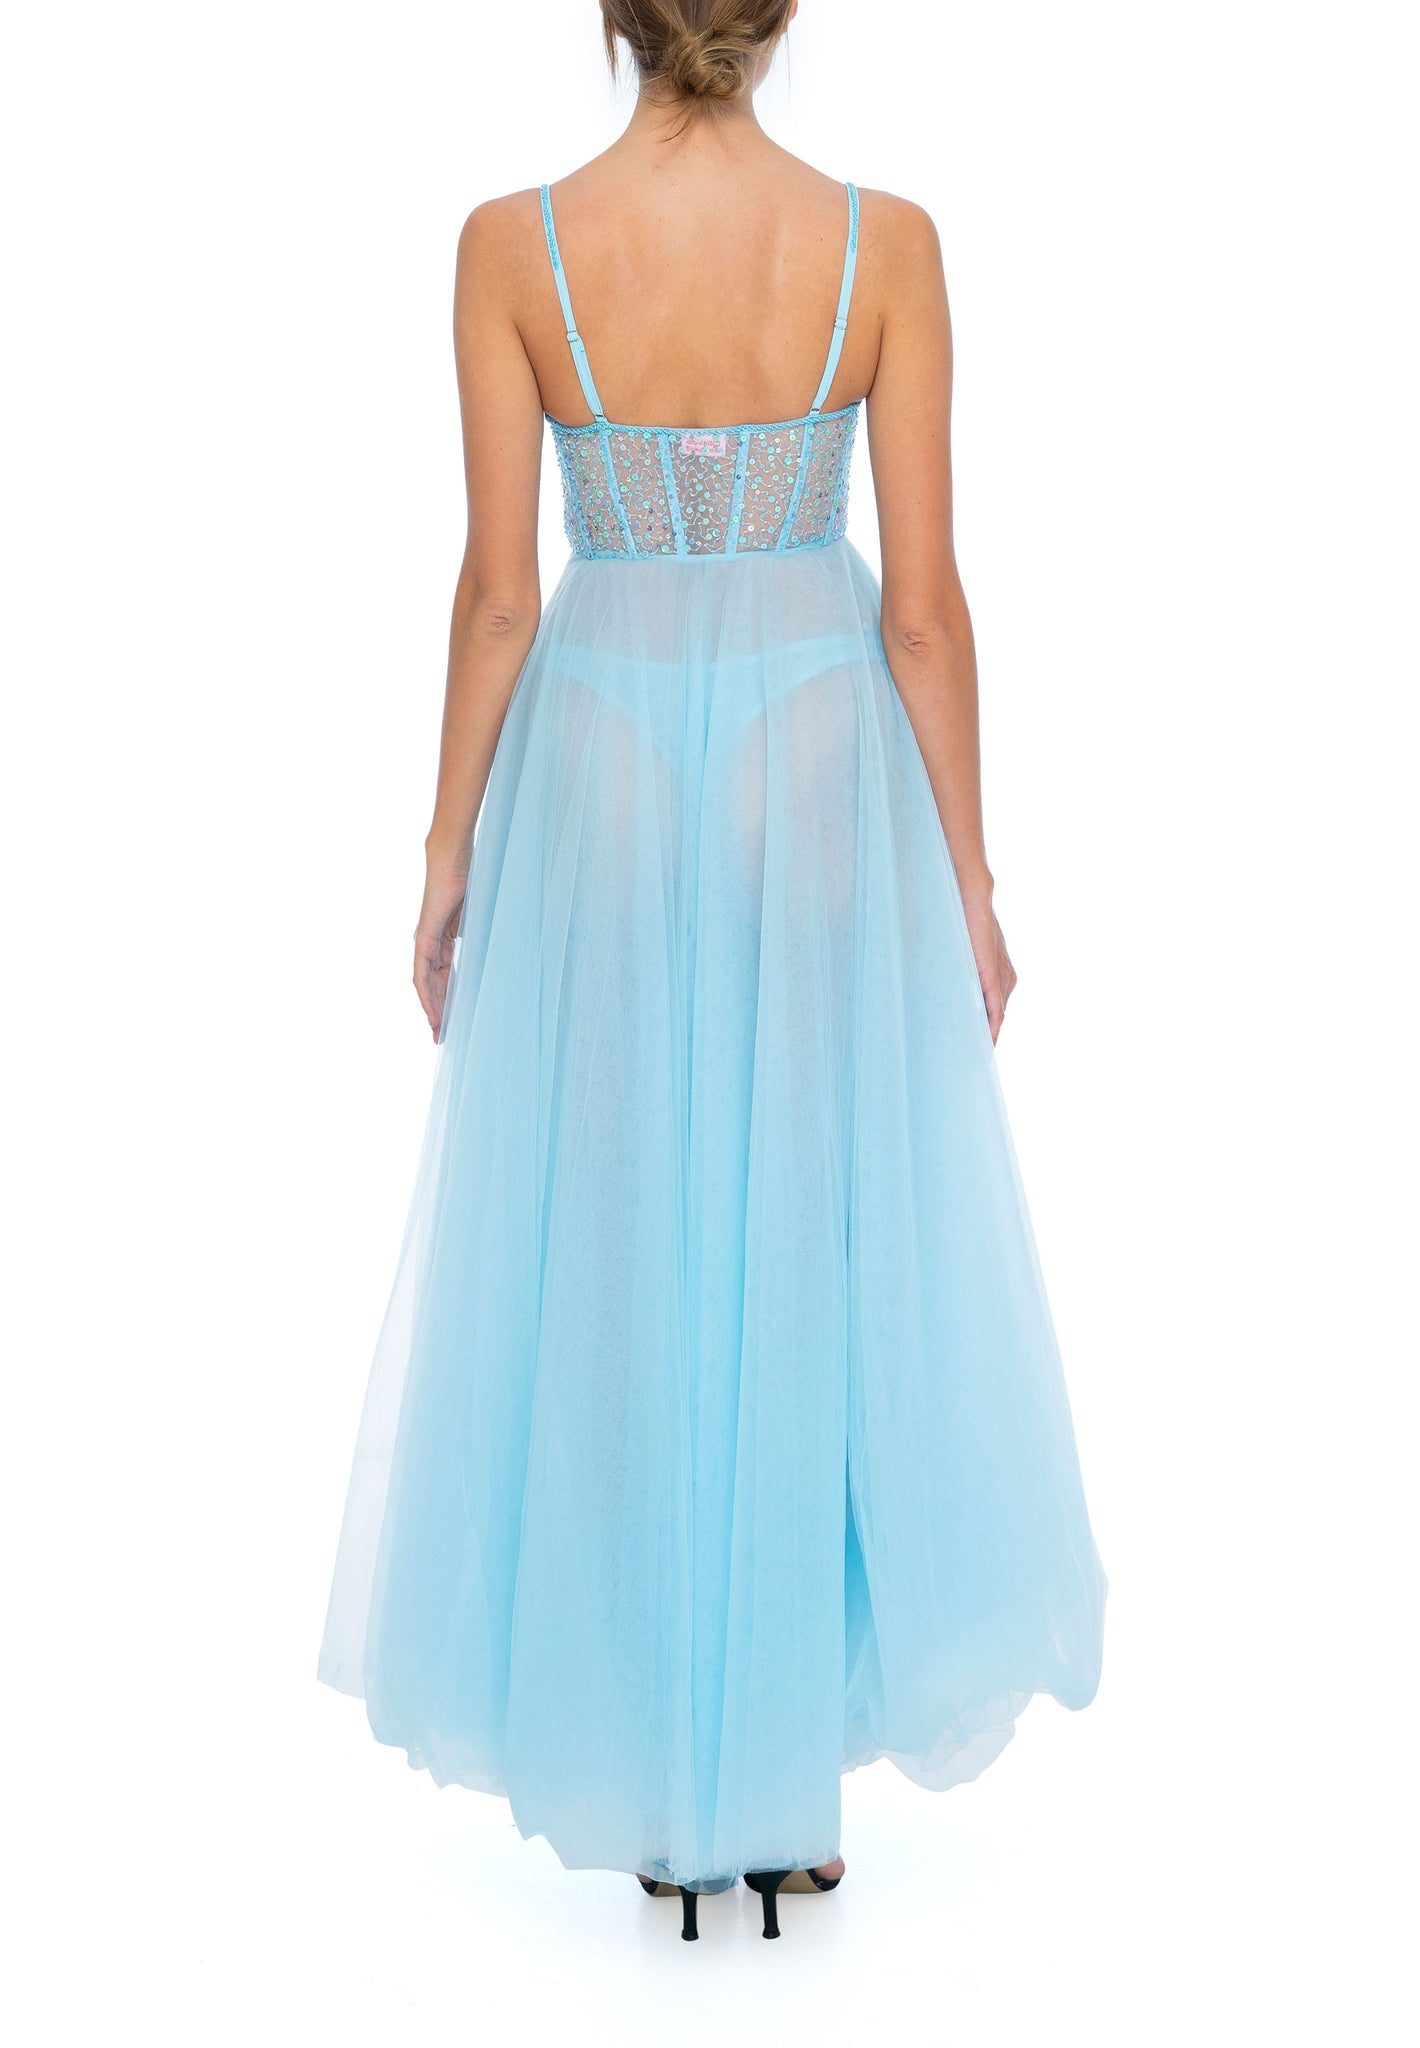 https://cdn.shopify.com/s/files/1/1129/2532/files/Nephele_Gown_in_blue_-_Dyspnea.mp4?2886